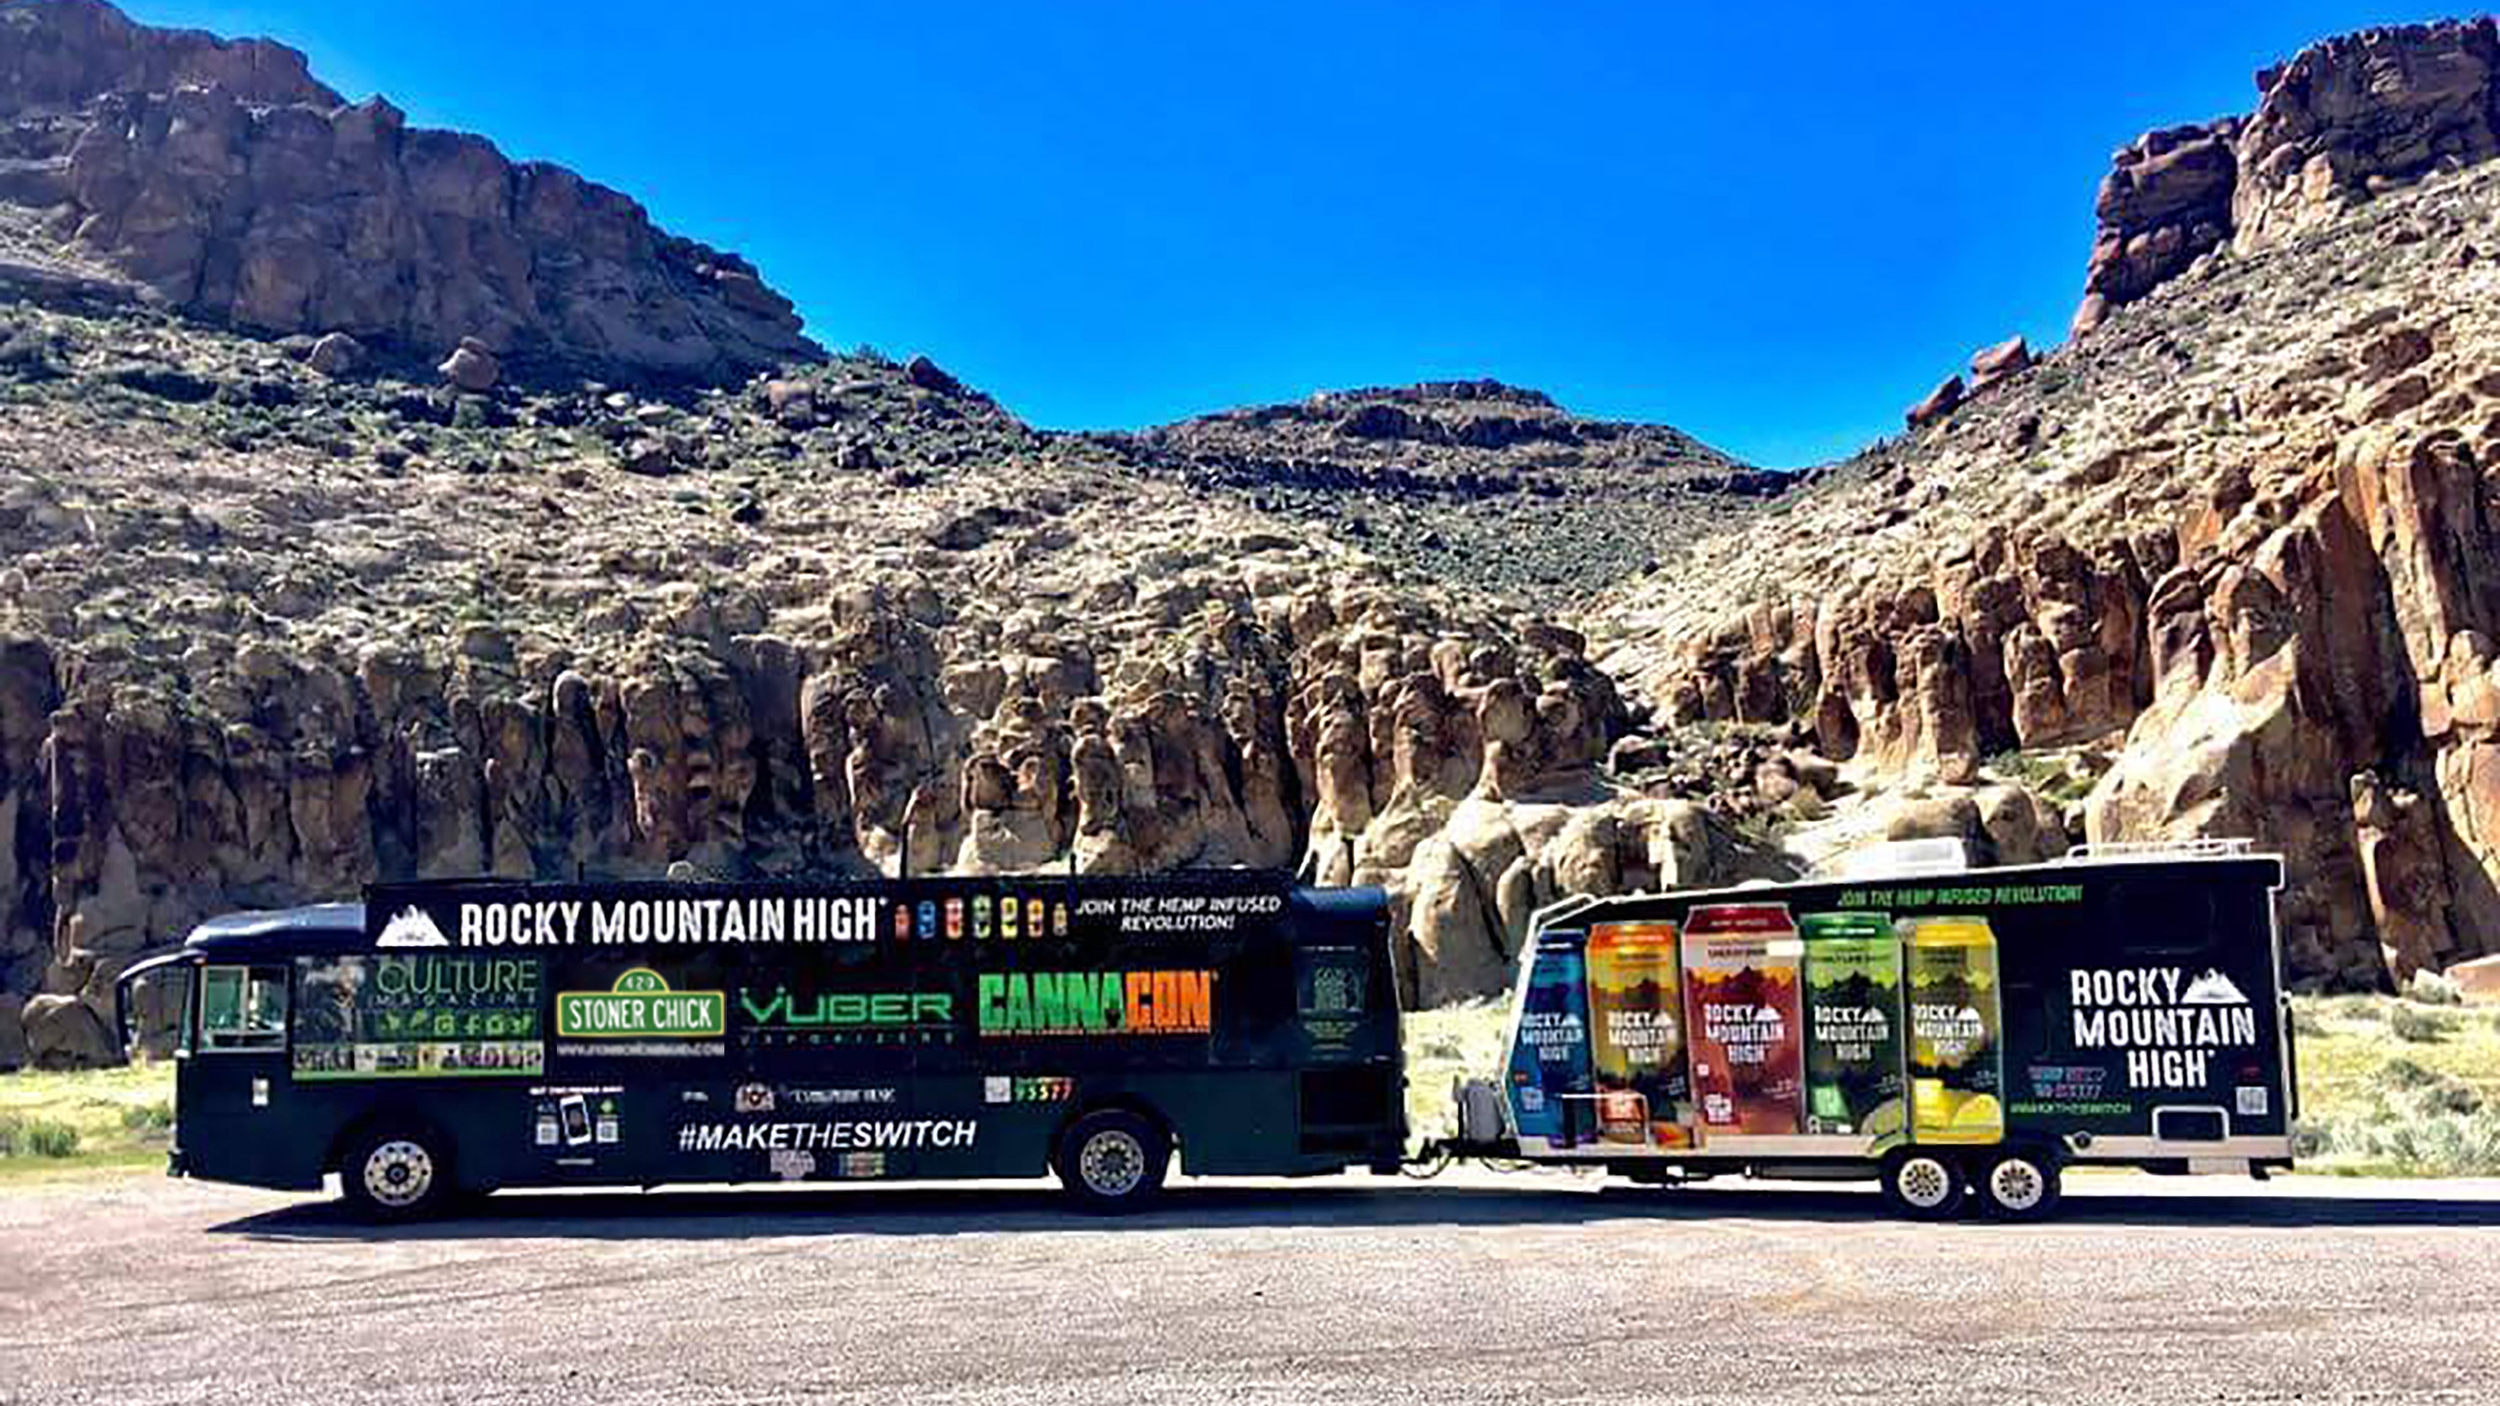 event tour exposure - We have three fully customized tour buses with room for your mobile advertising needs. Whether it's from our seasonal tours or a trip to Seattle Hempfest or even the Superbowl, we can rep your brand on the road with us to every event.